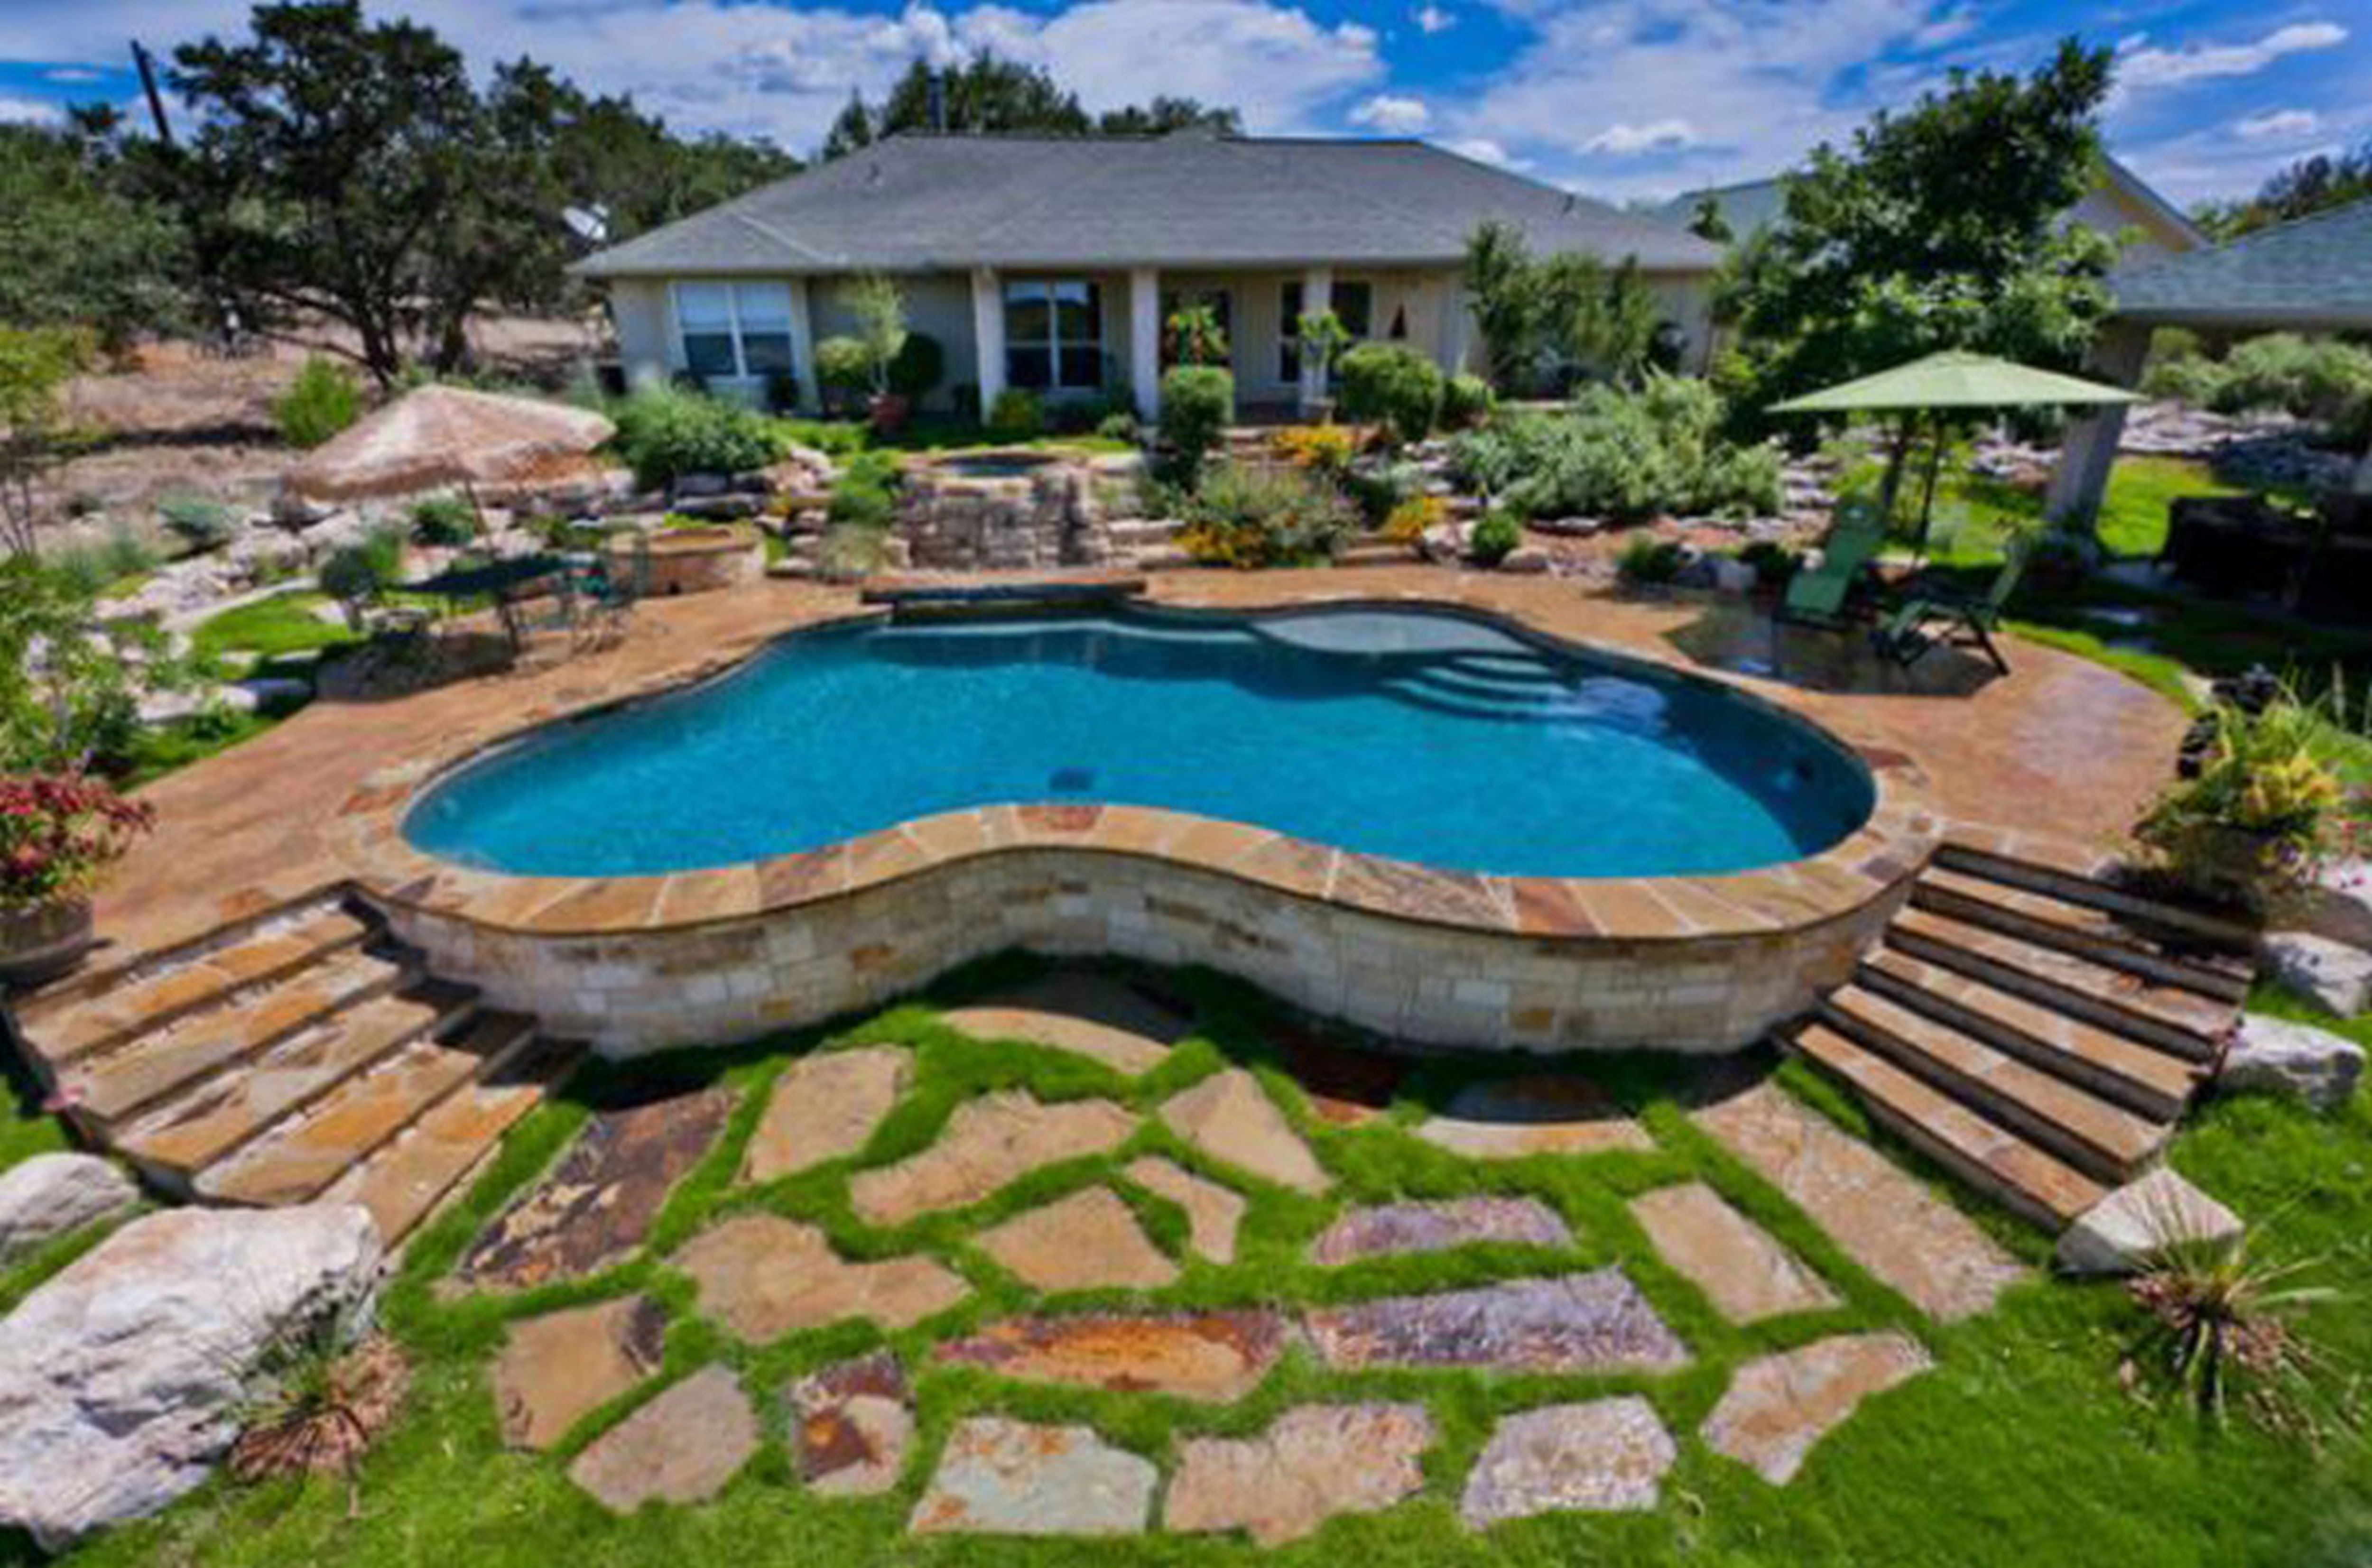 Backyard Pool Designs | Designer Pools and Spas | Mini Inground Pools